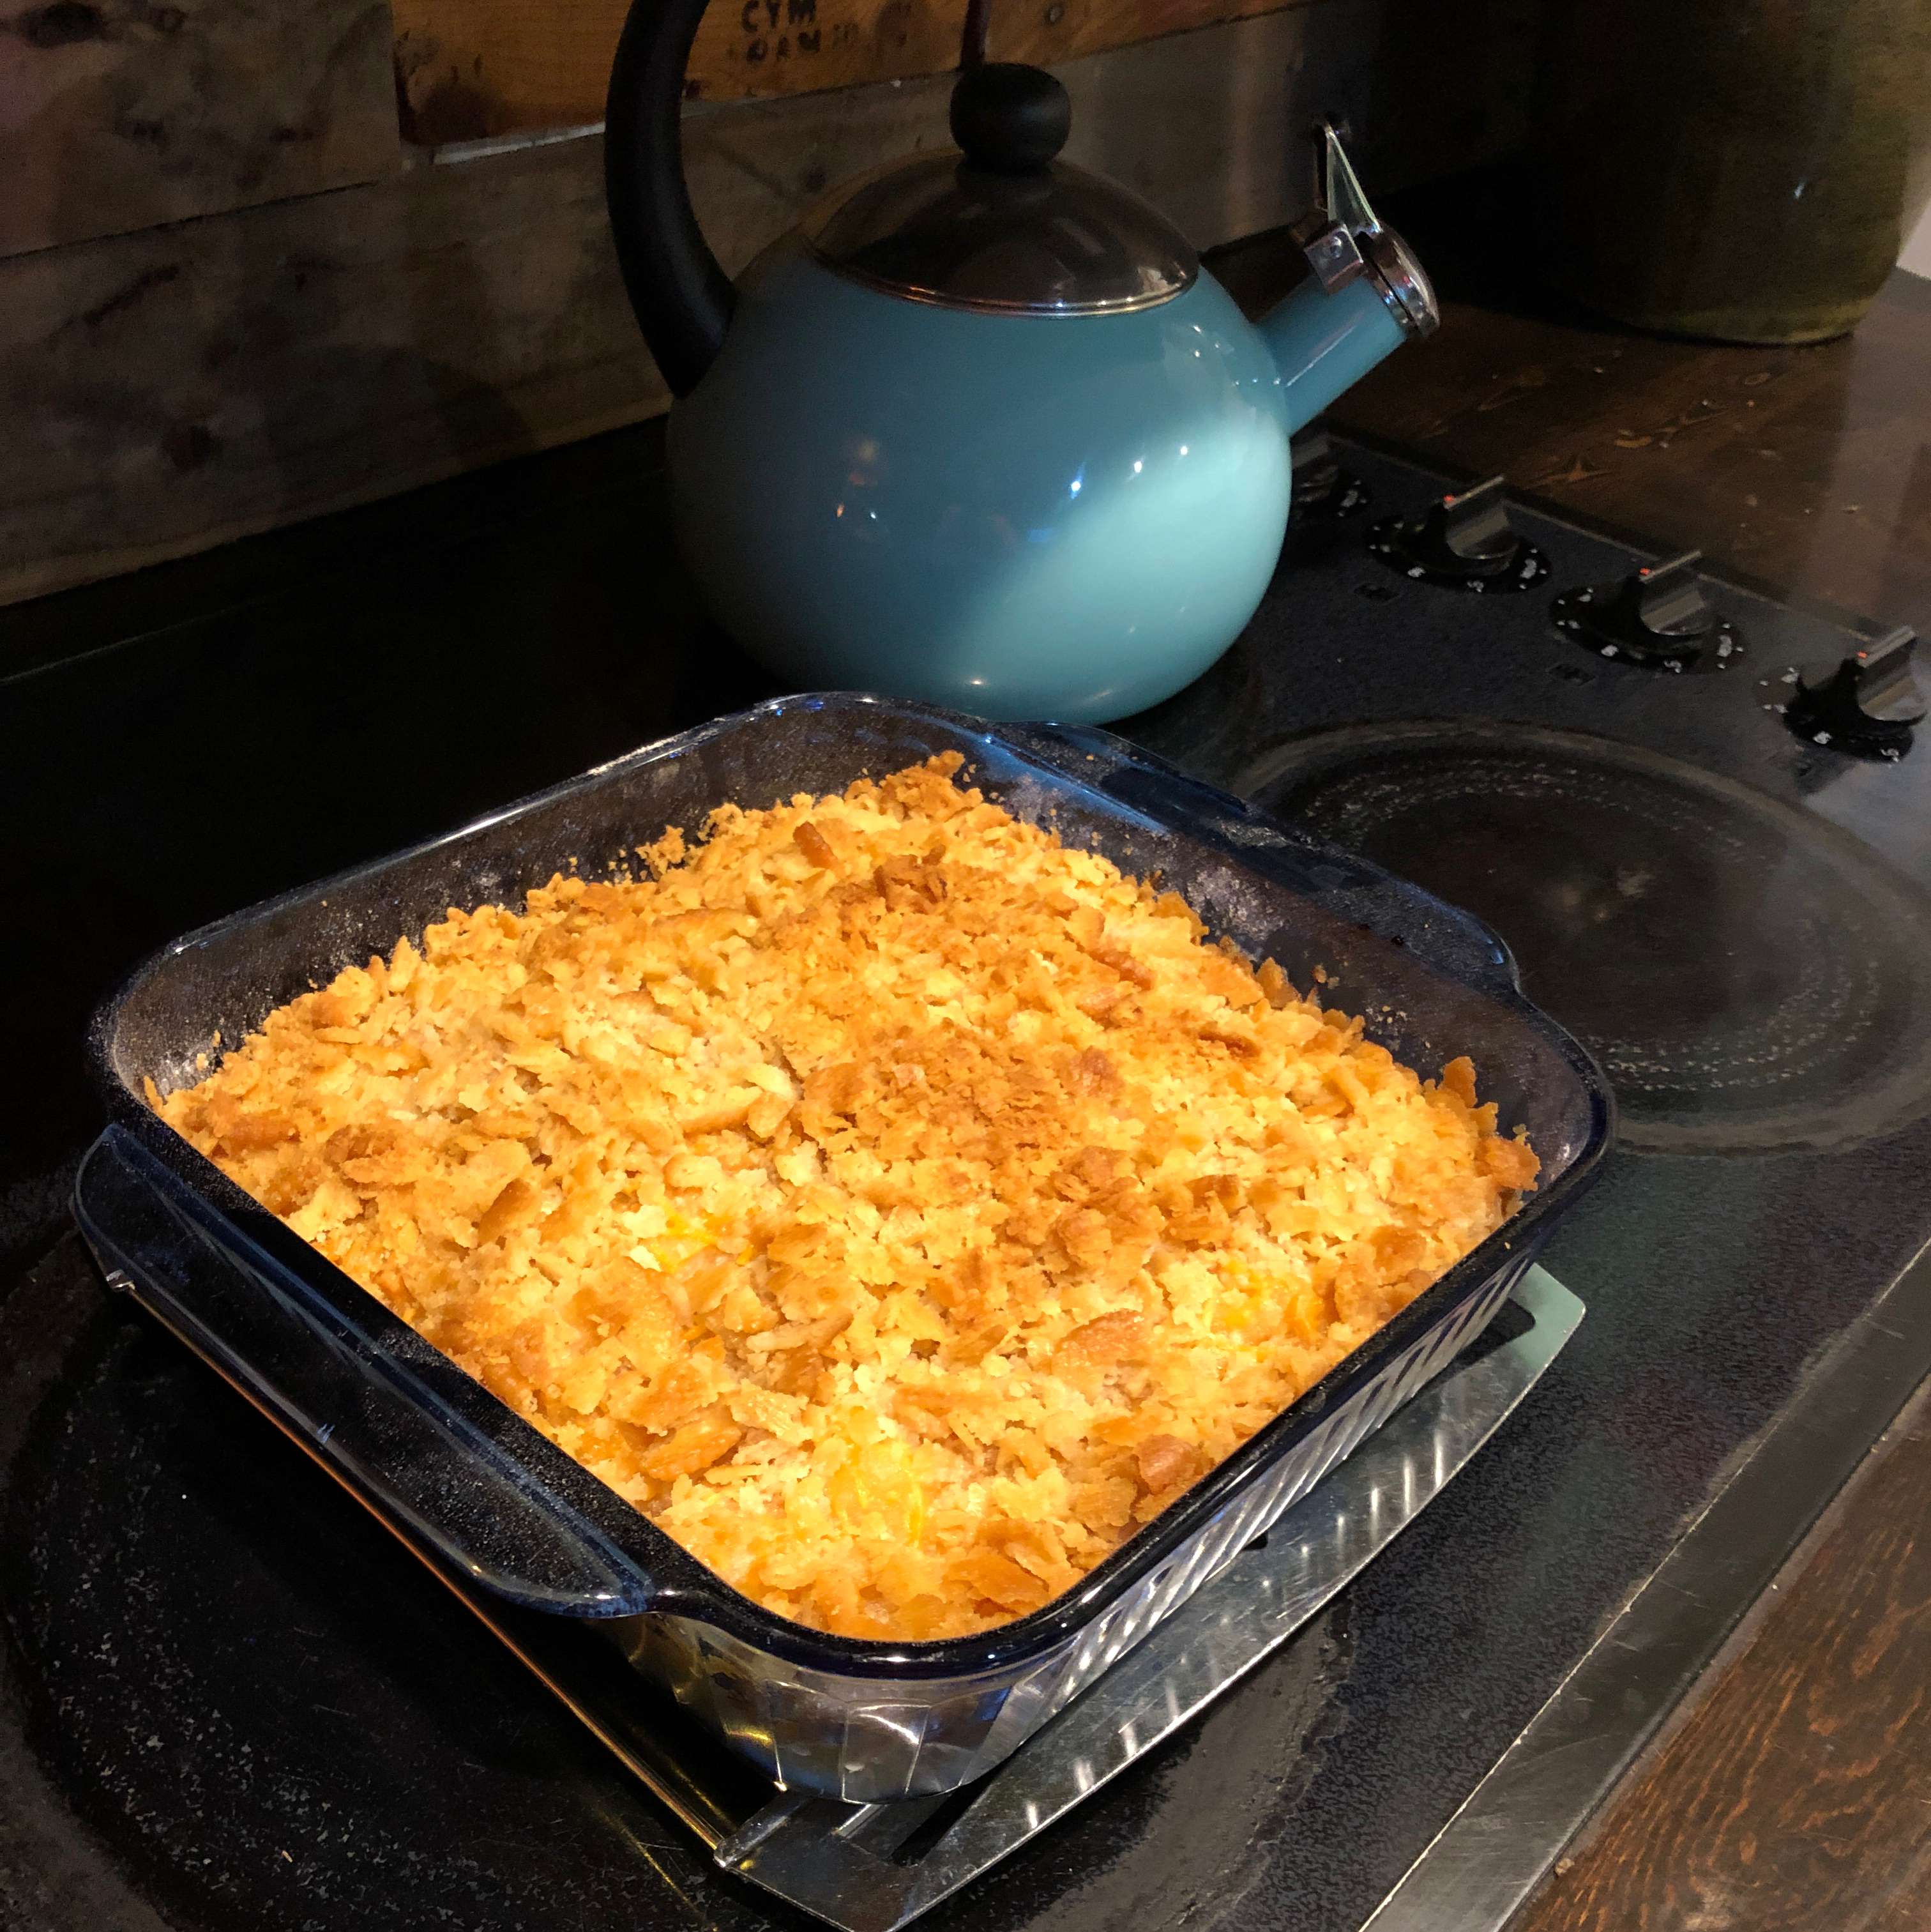 Tricia's Pineapple Cheese Casserole